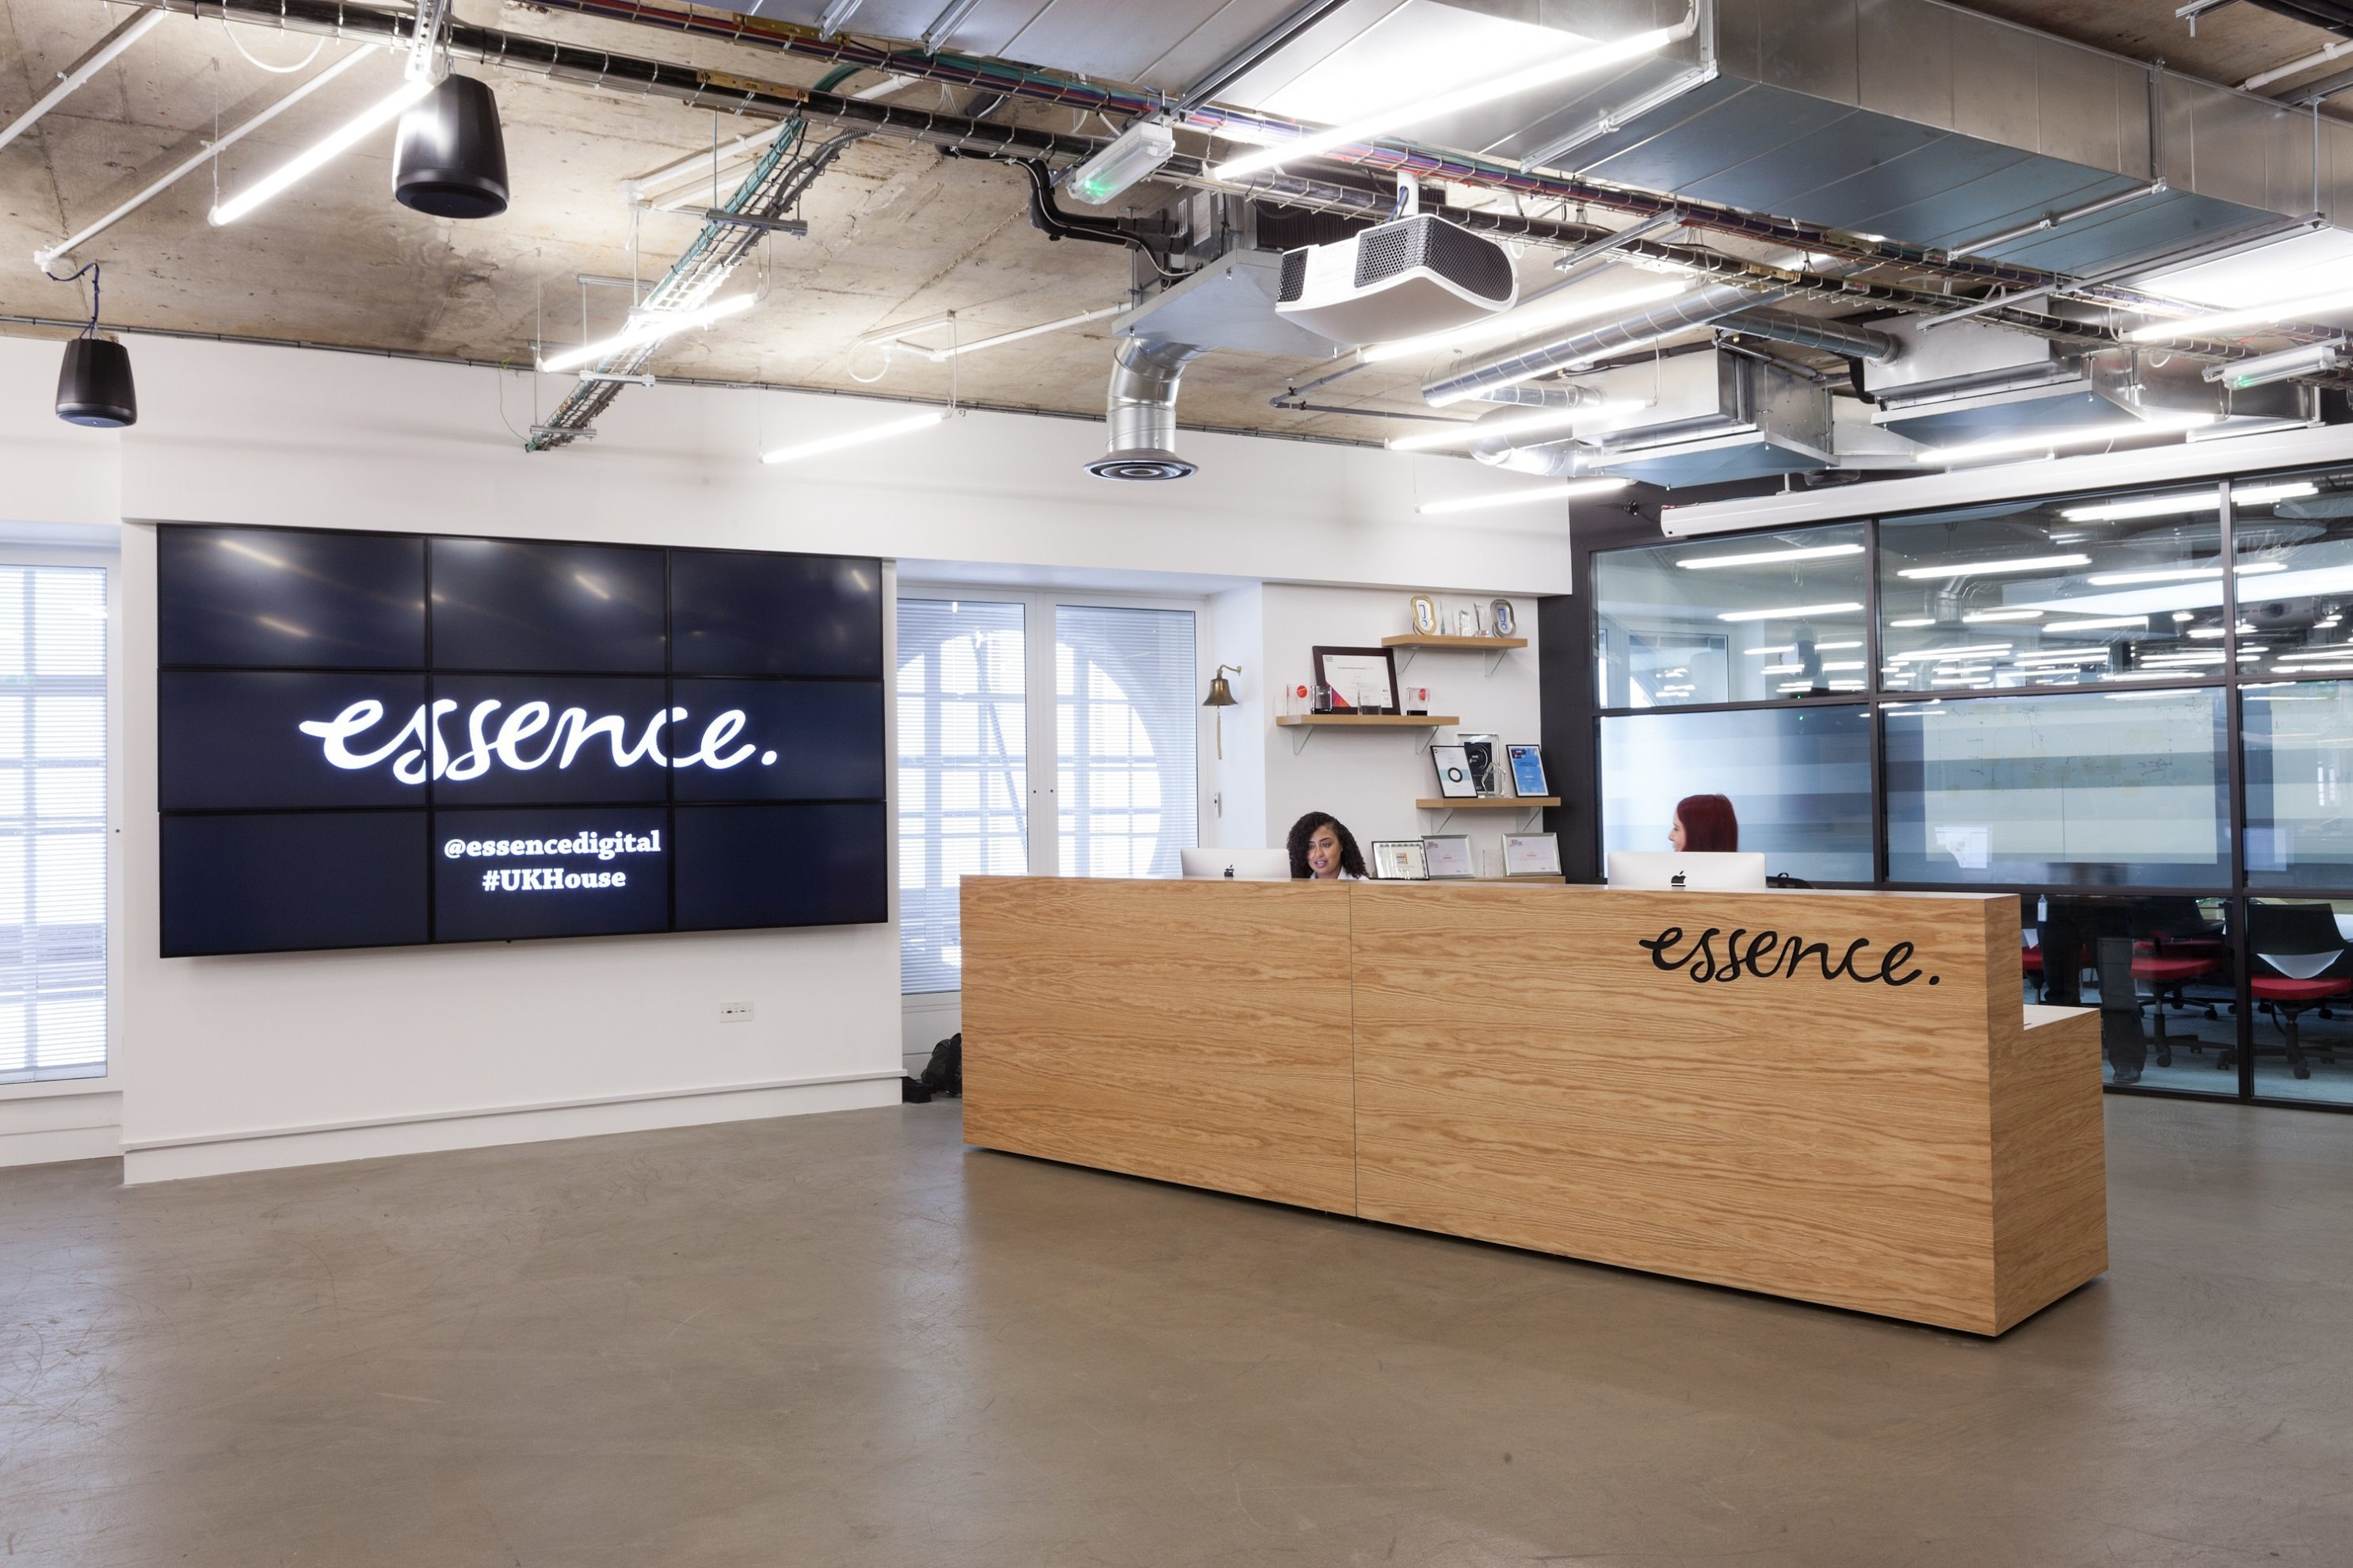 A Look Inside Essence's London Office